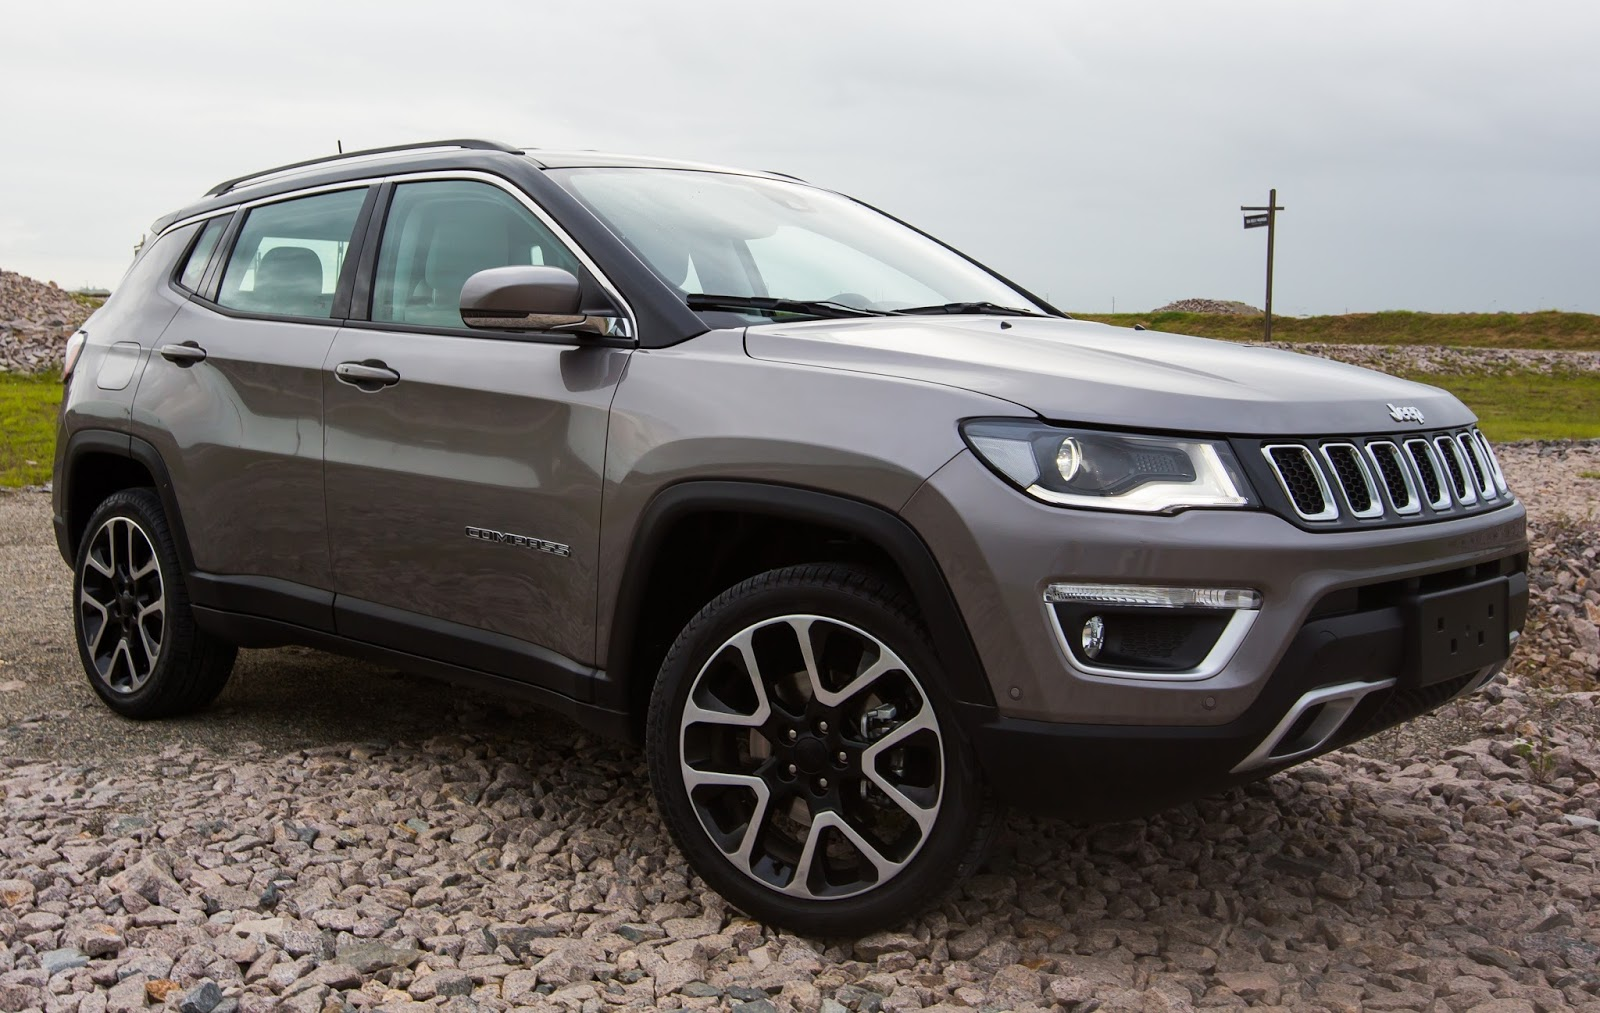 jeep compass 2018 estreia novidades em equipamentos cores e vers es. Black Bedroom Furniture Sets. Home Design Ideas